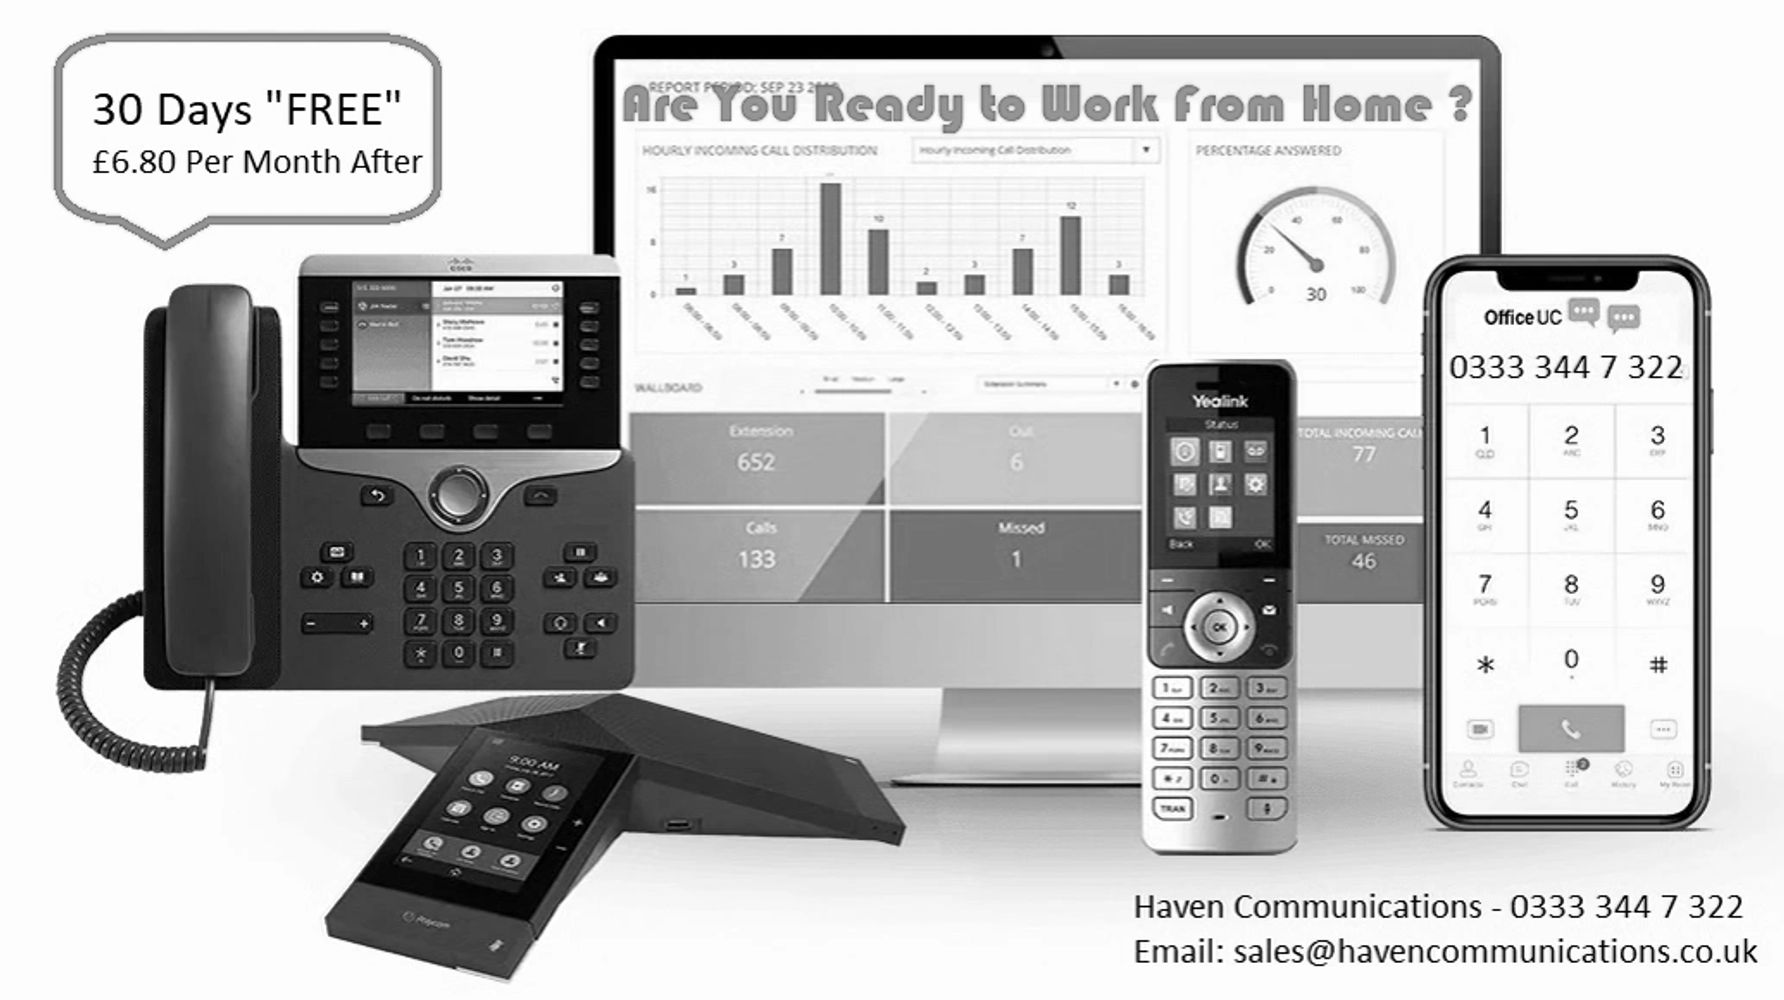 Business Telephone Lines,Broadband, VoIP,Hosting systems,Hosting, SIP Hosting,Local Business,Telecom